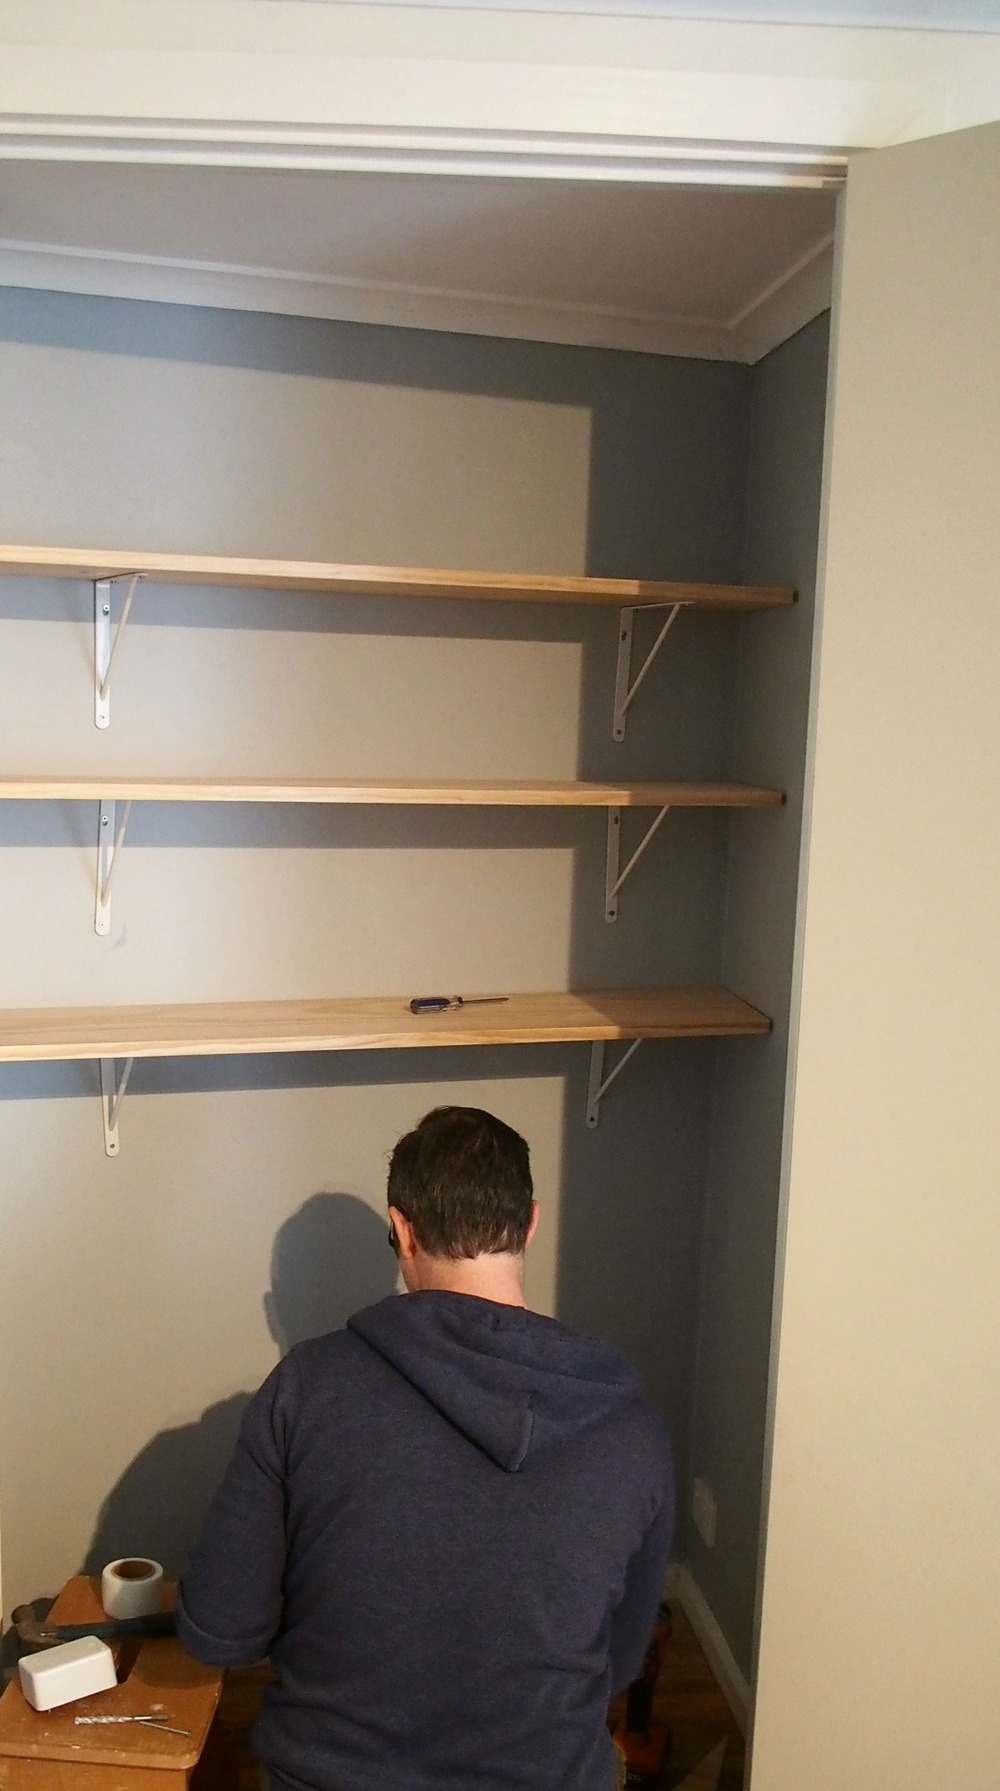 Shelving inside cupboard to increase storage